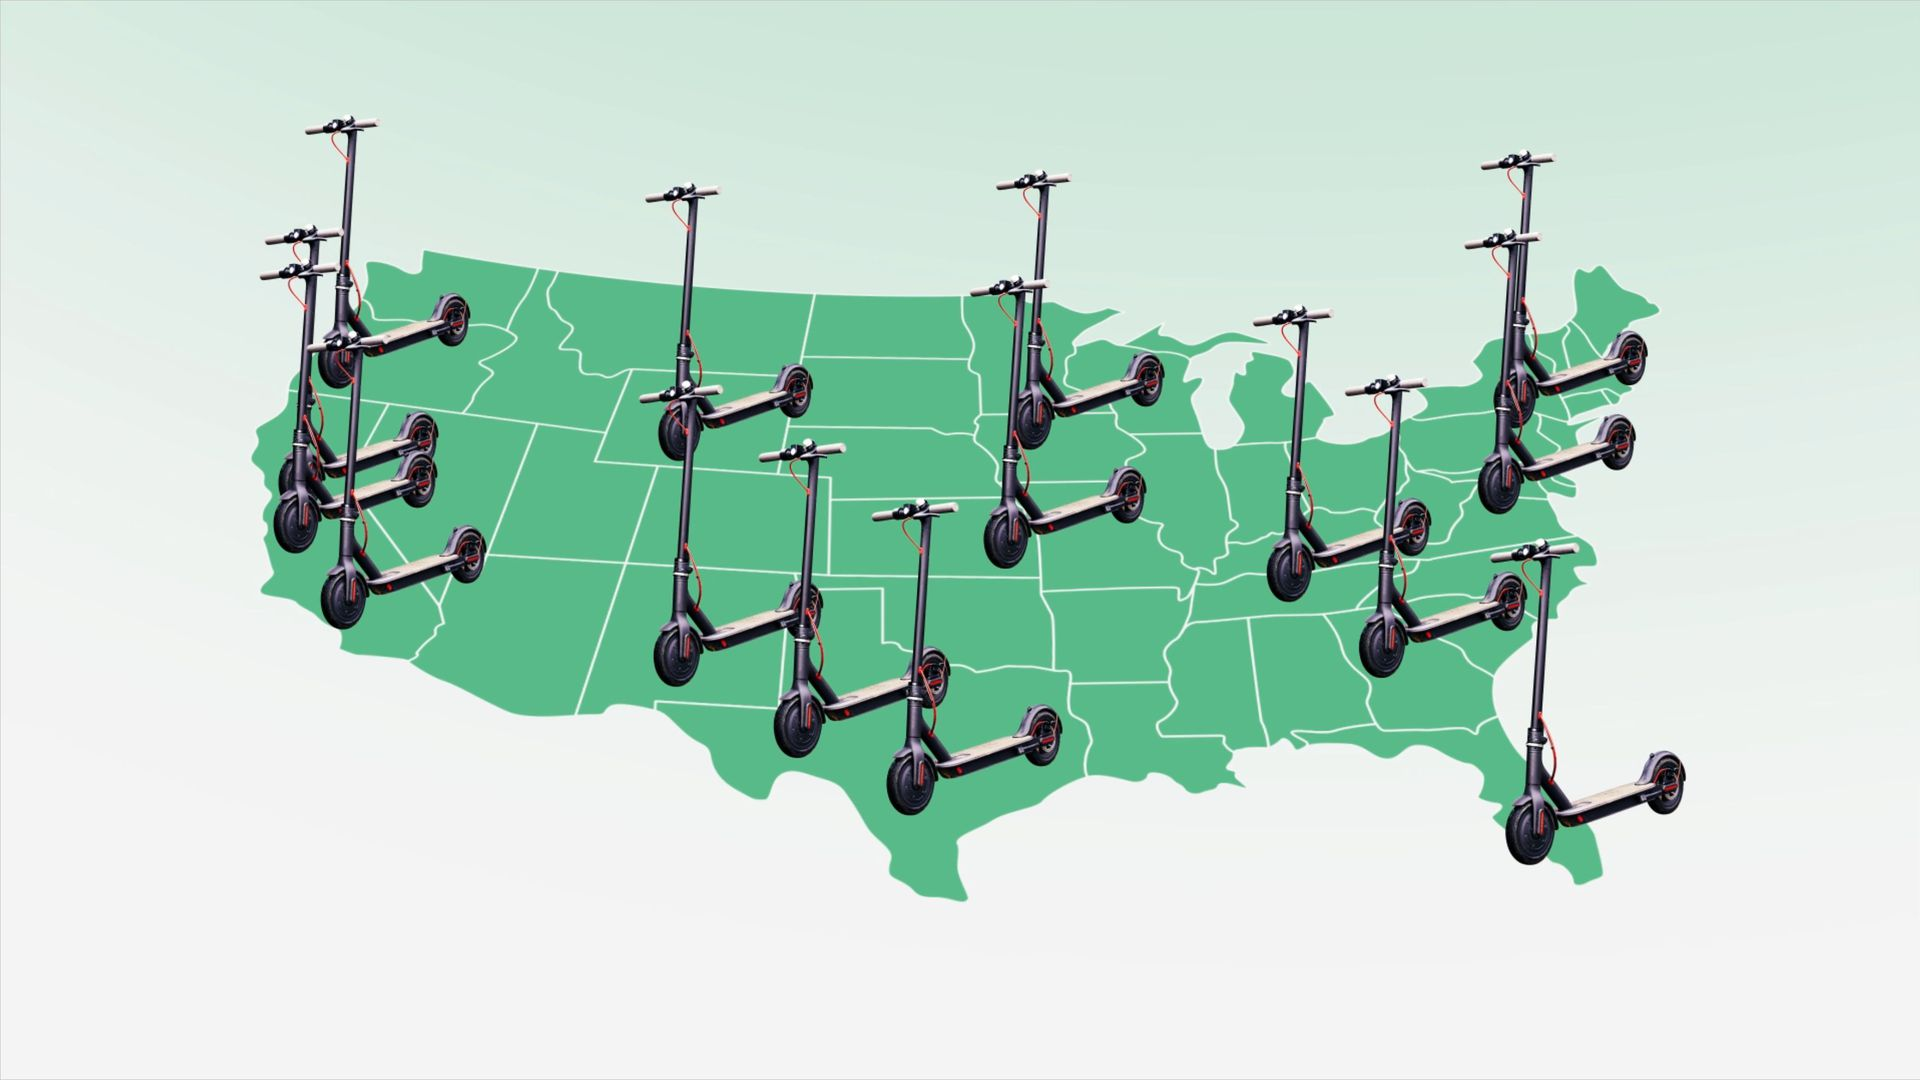 The next big fad: electric scooters on demand